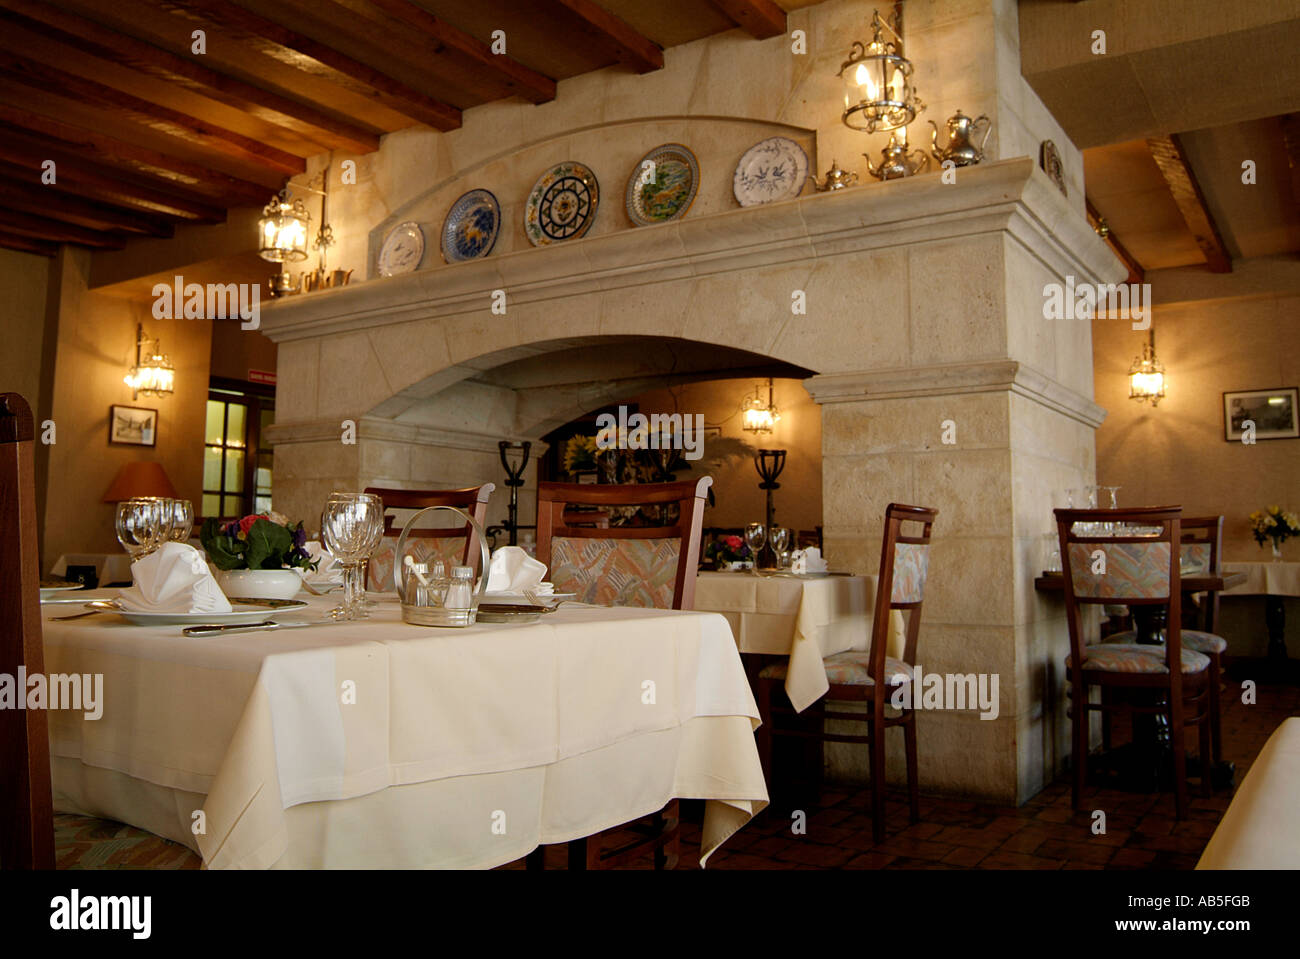 French, Restaurant, France, Food, Romantic, Dinner, Lunch, Table, At,  Cloth, Candle, Light, Candlelight, Candlelit, Lit, Meal